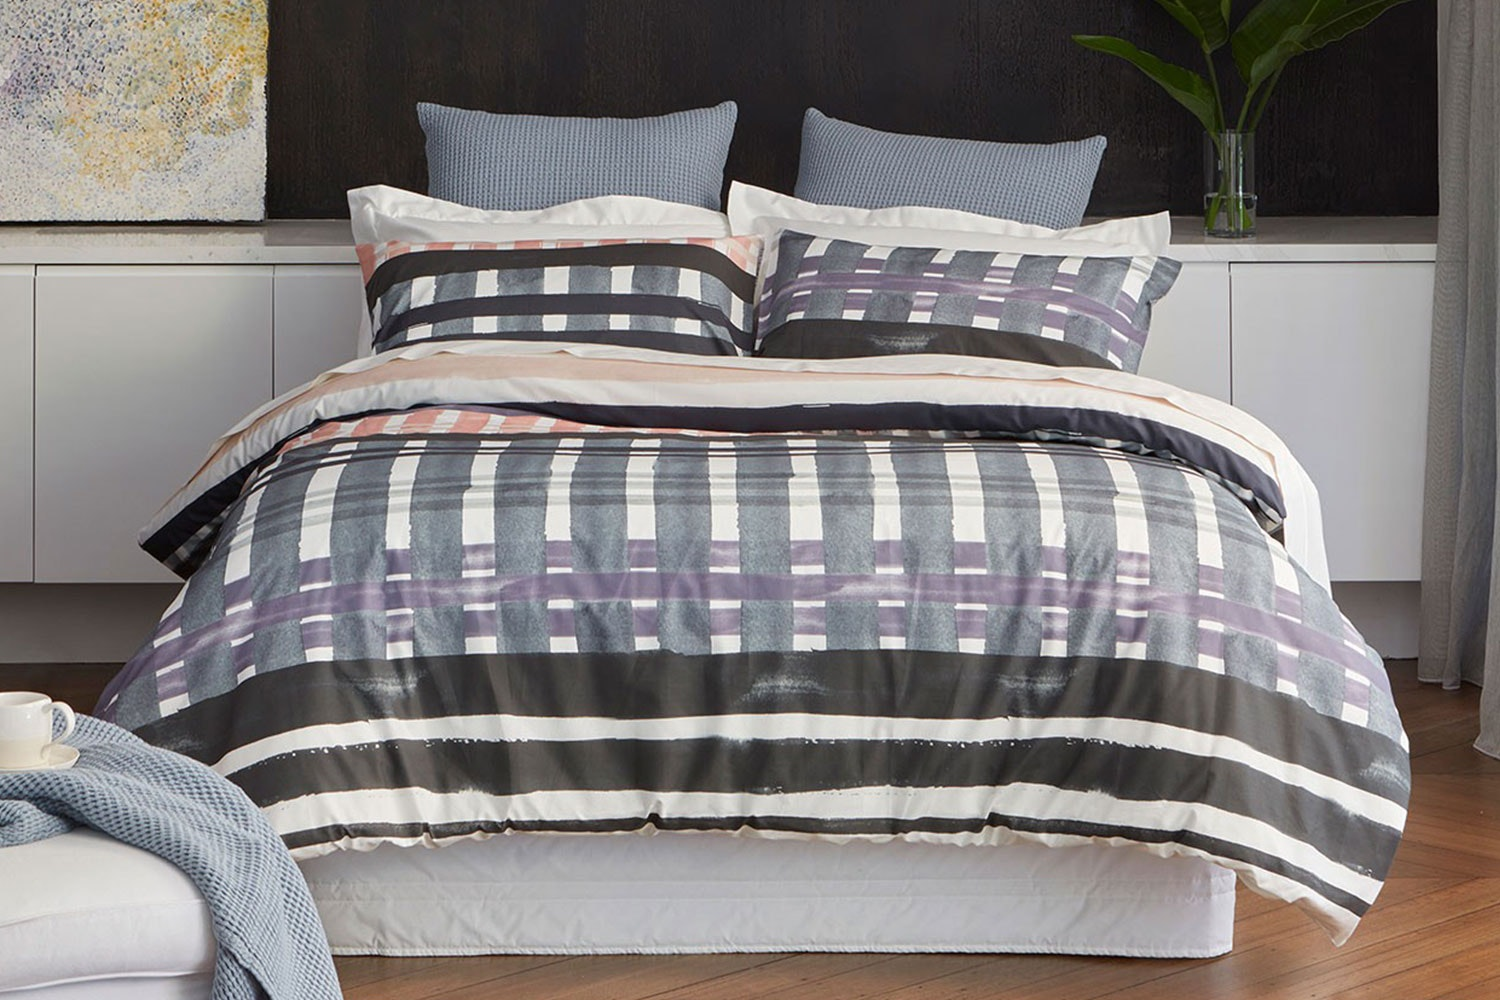 Corfu Duvet Cover Set by Baksana